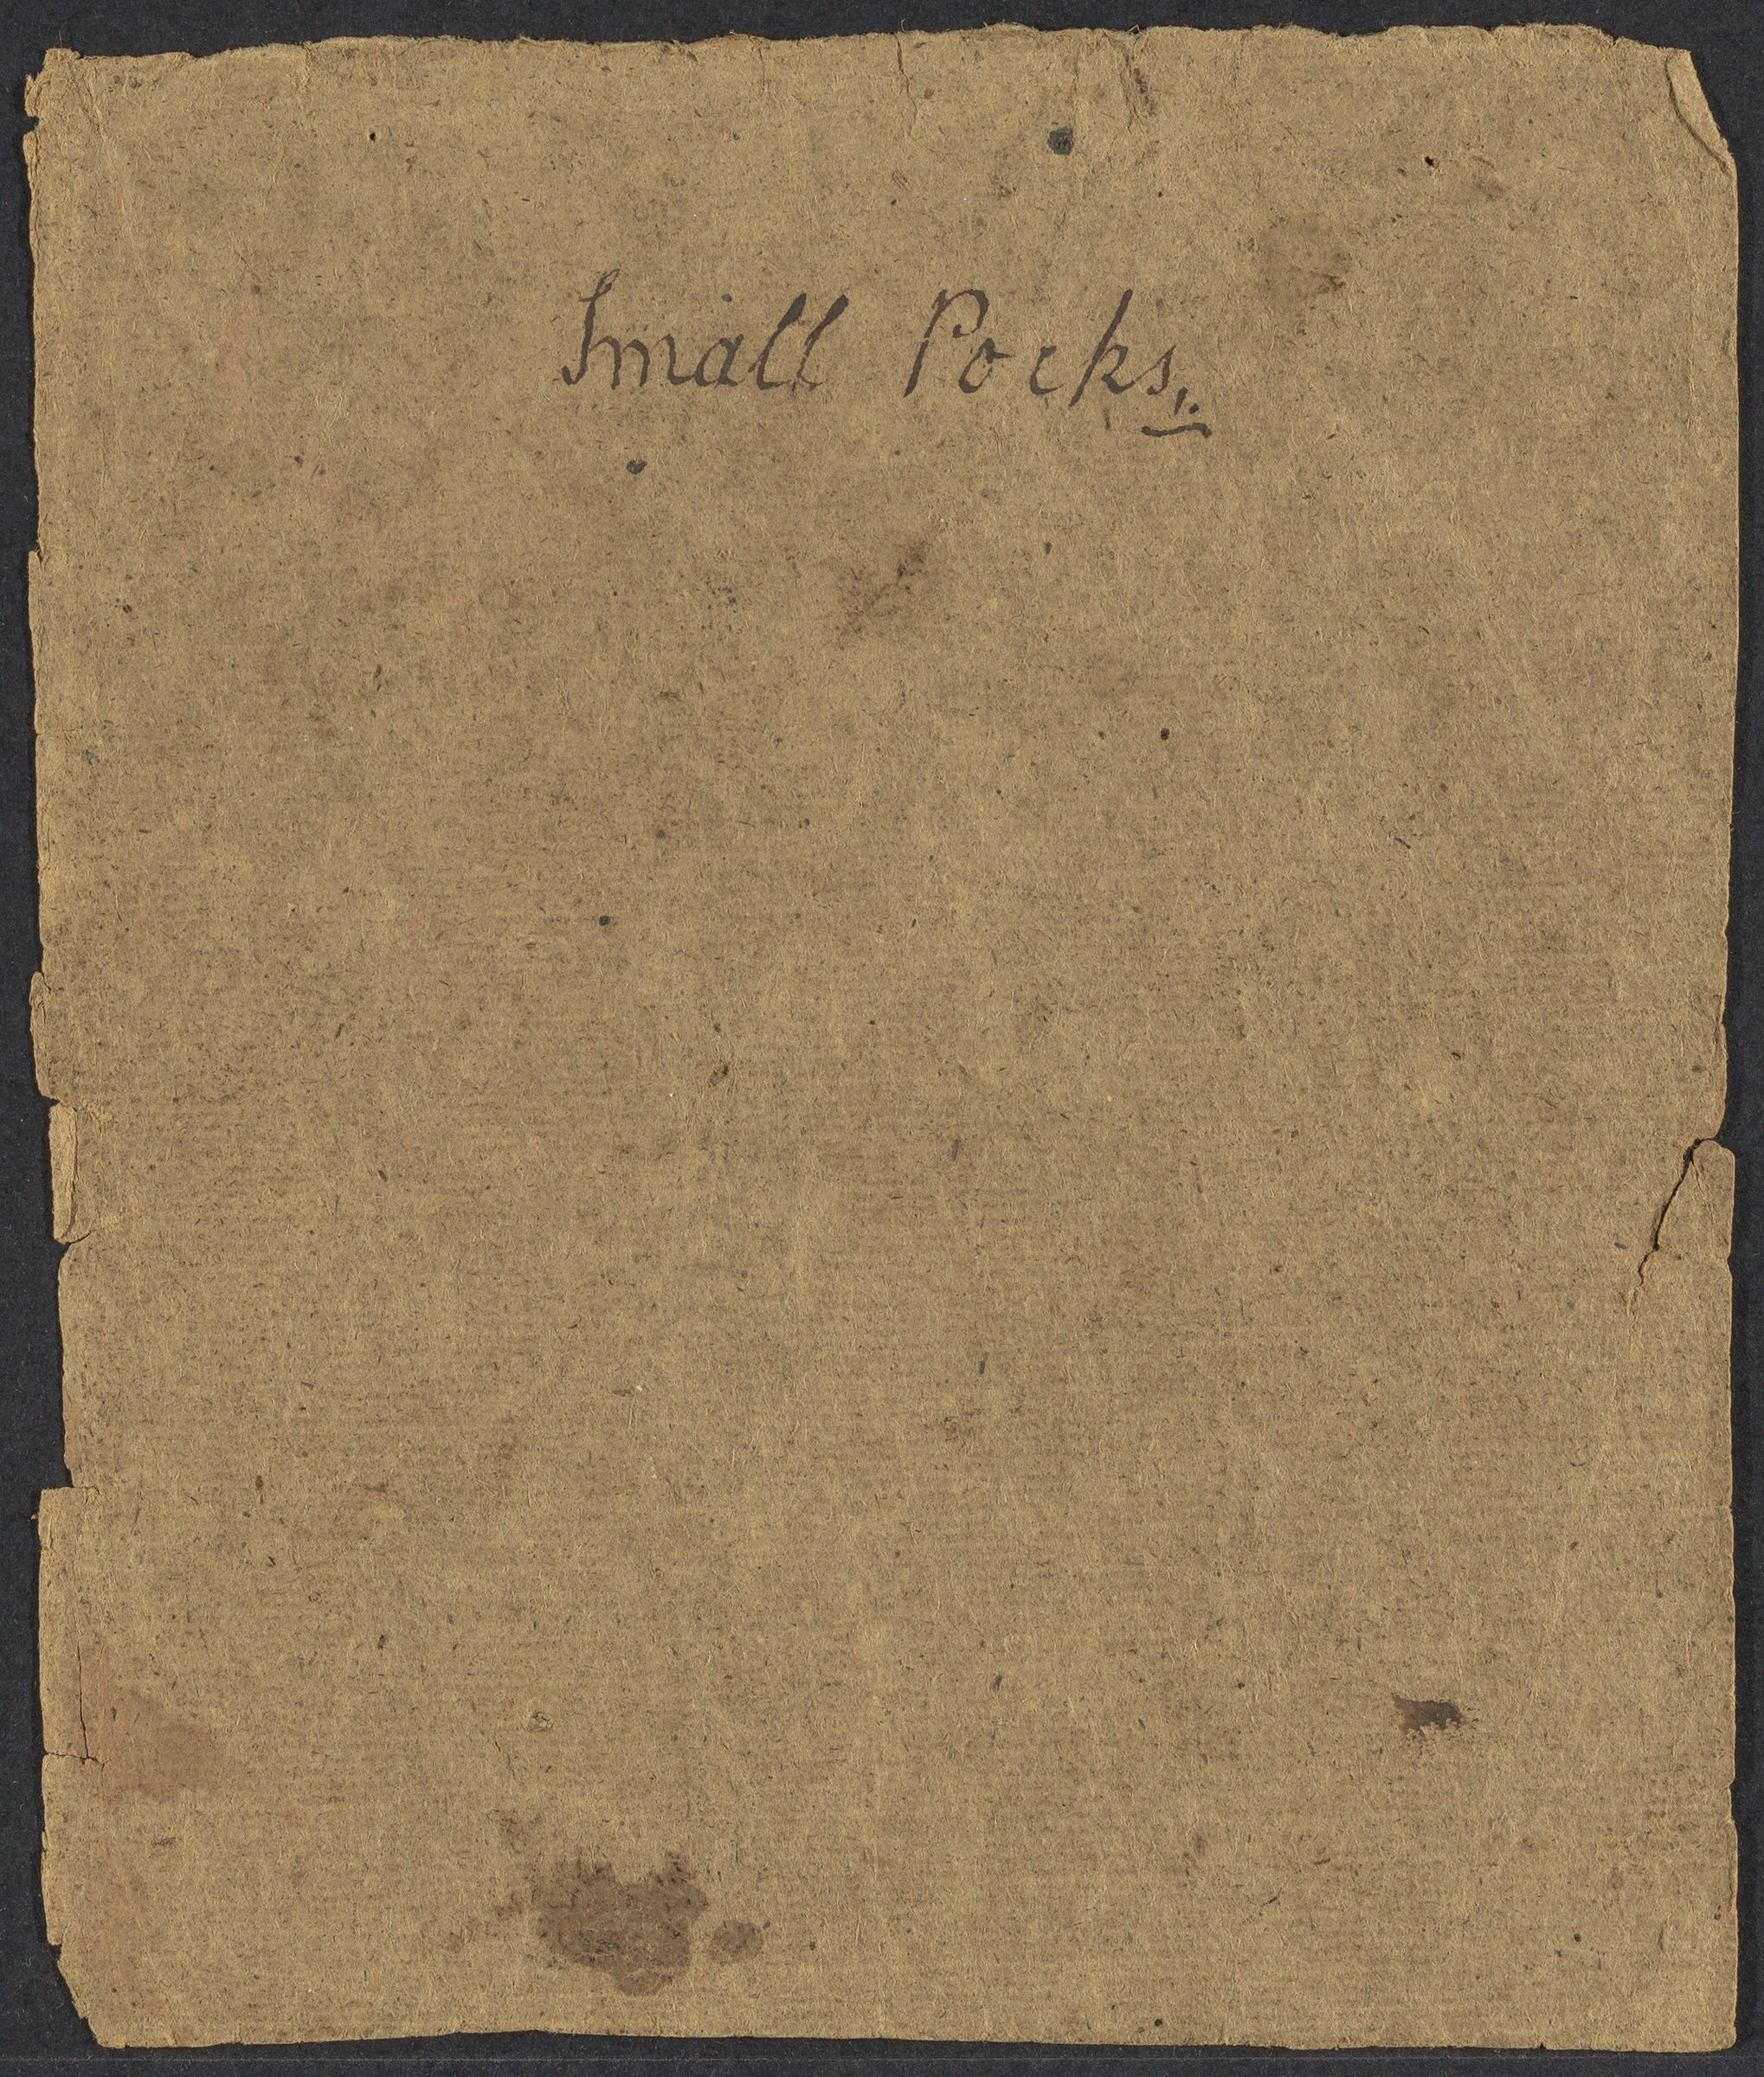 Small Pocks, 1775-1779 (inclusive)